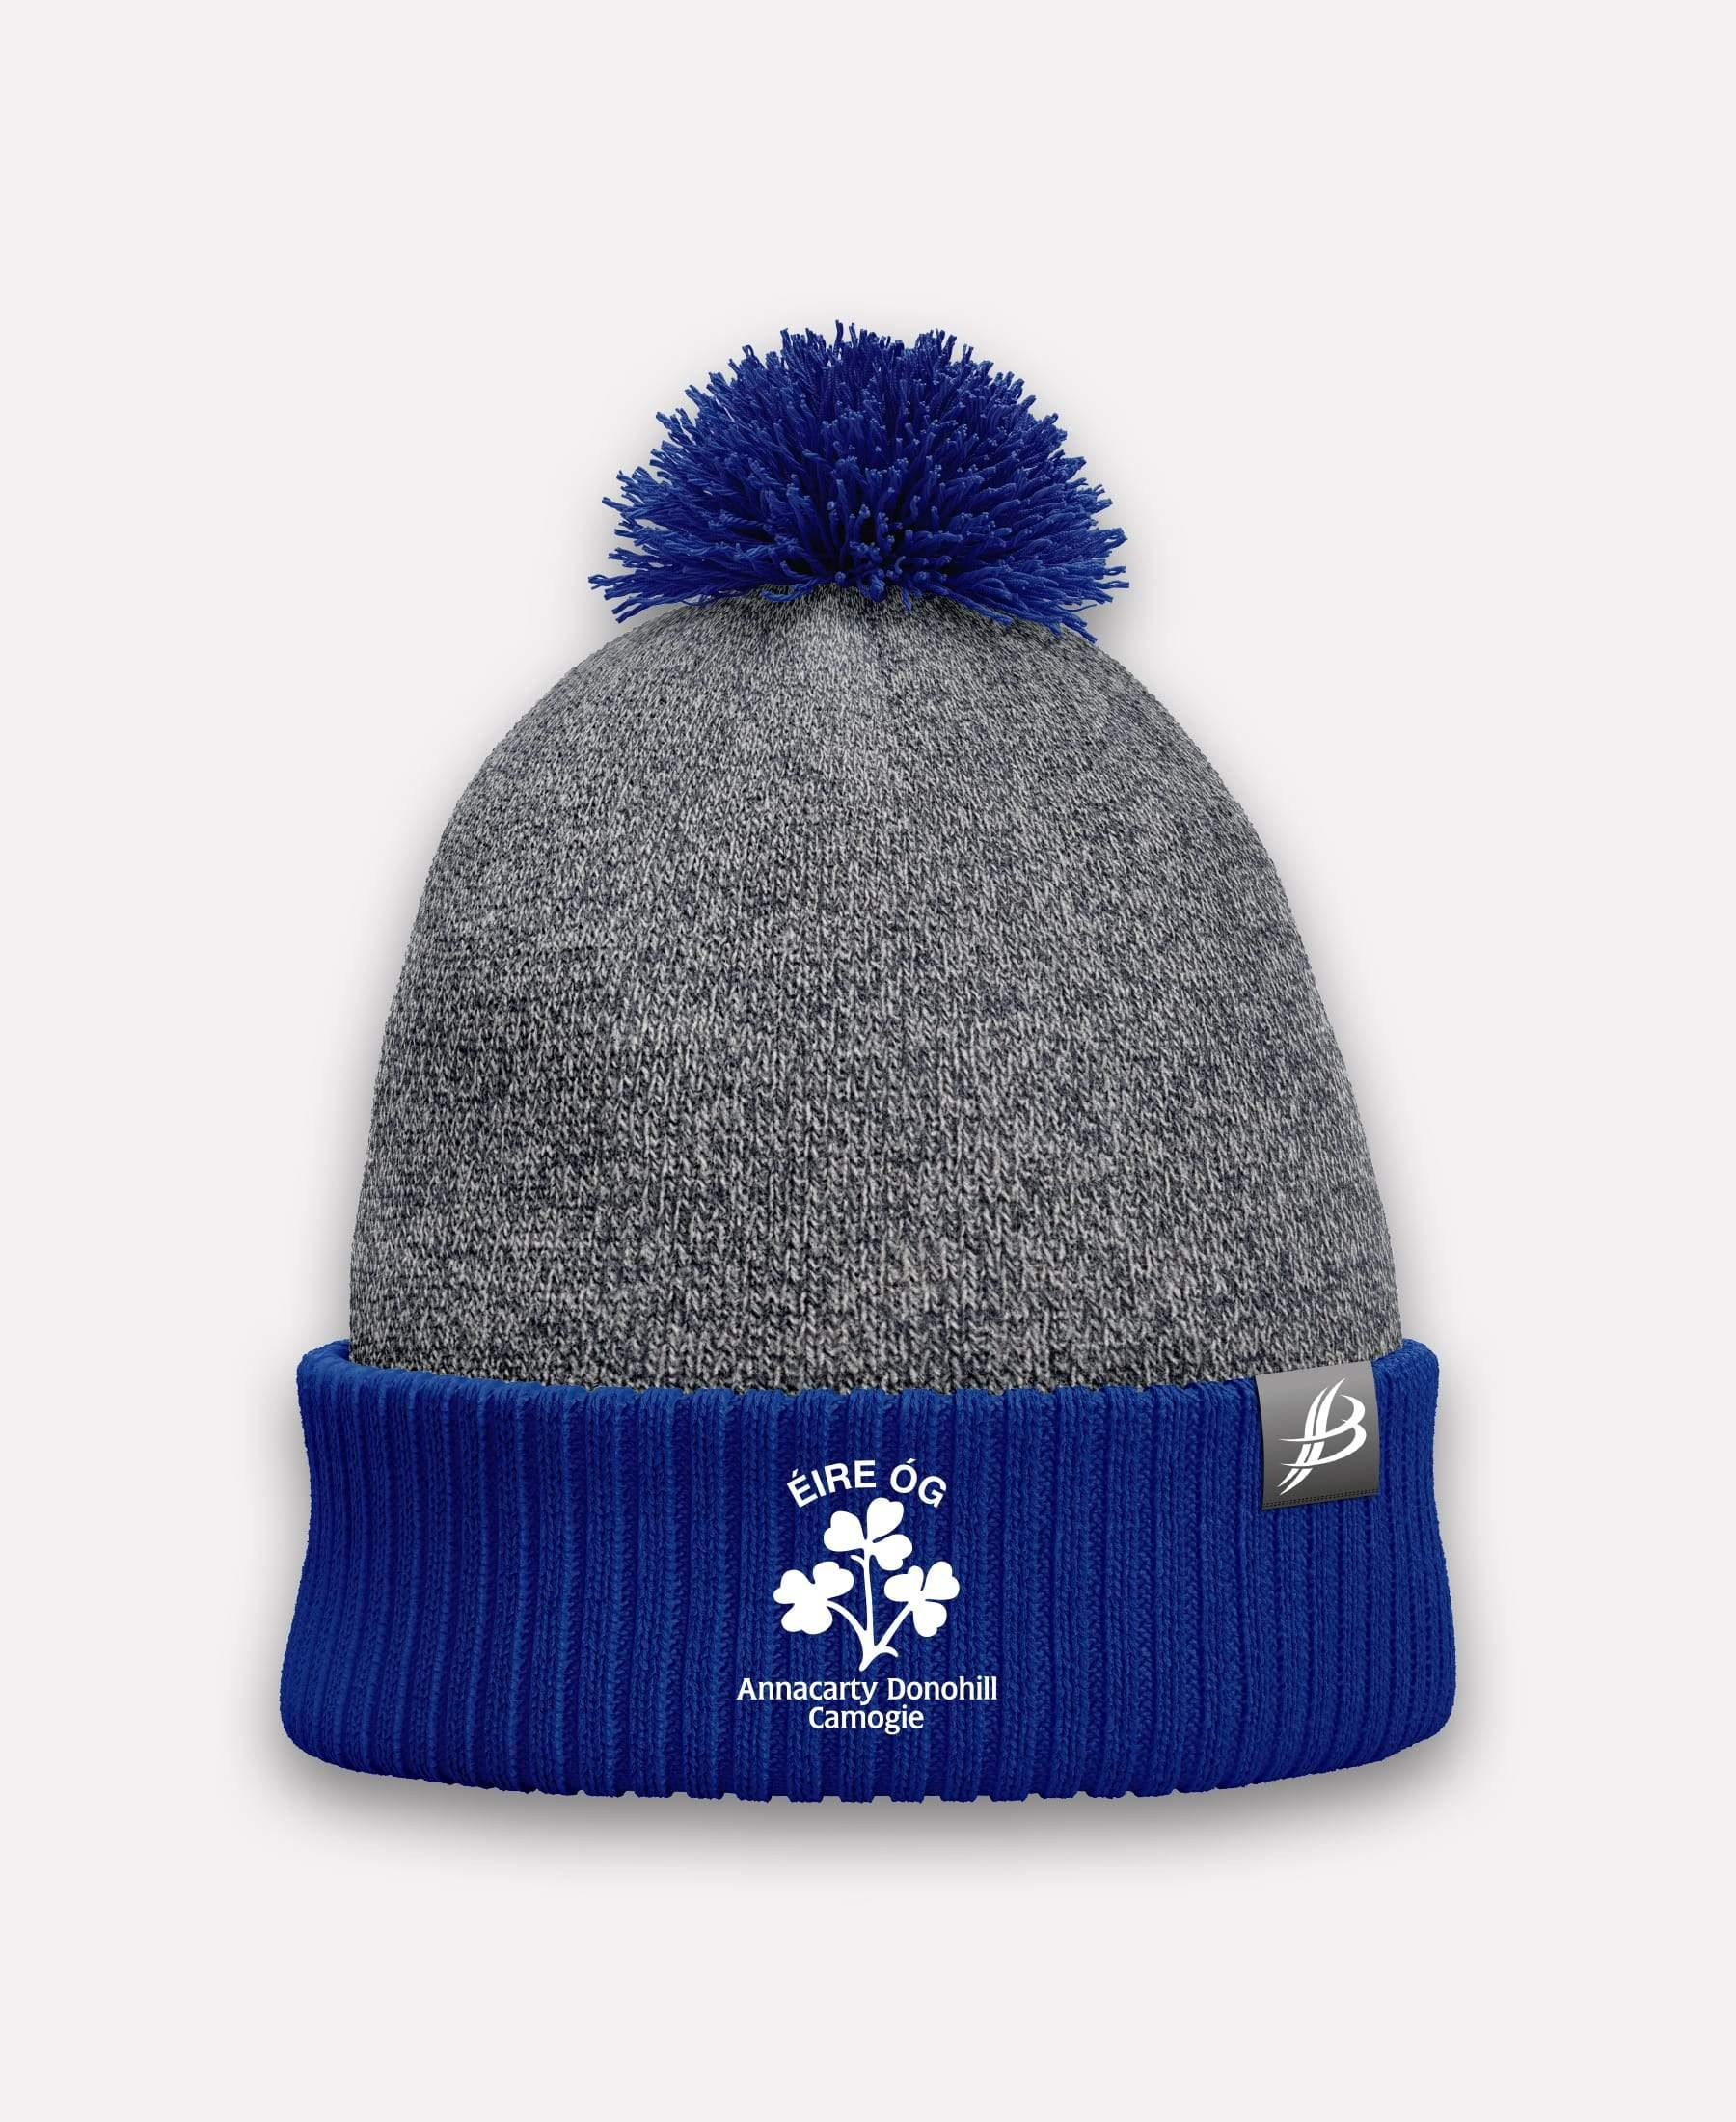 Eire Og Annacarty Donohill Camogie Storm Bobble Hat